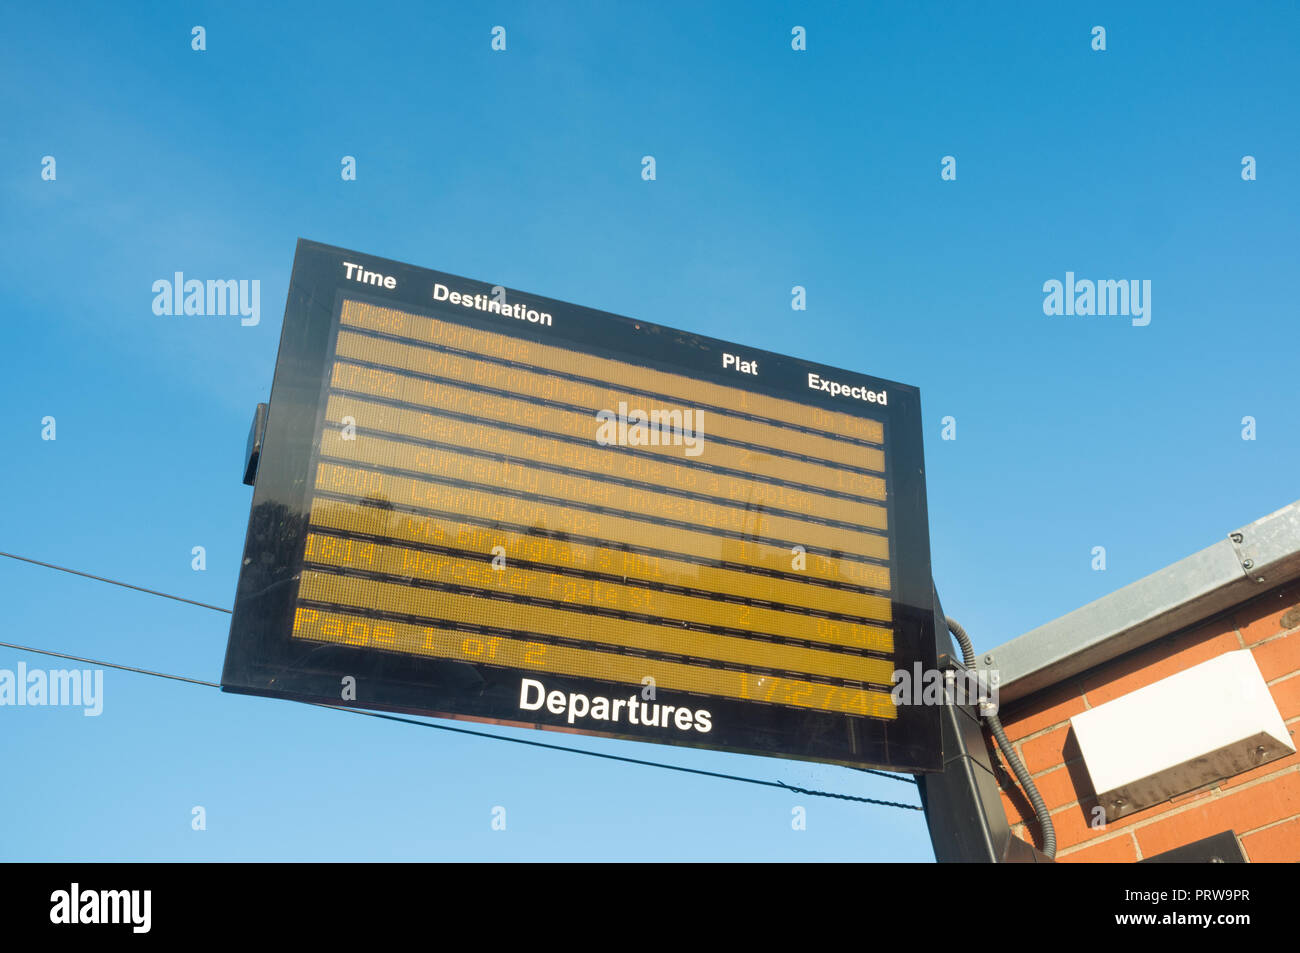 Train departures screen outdoors at a UK railway Station - Stock Image